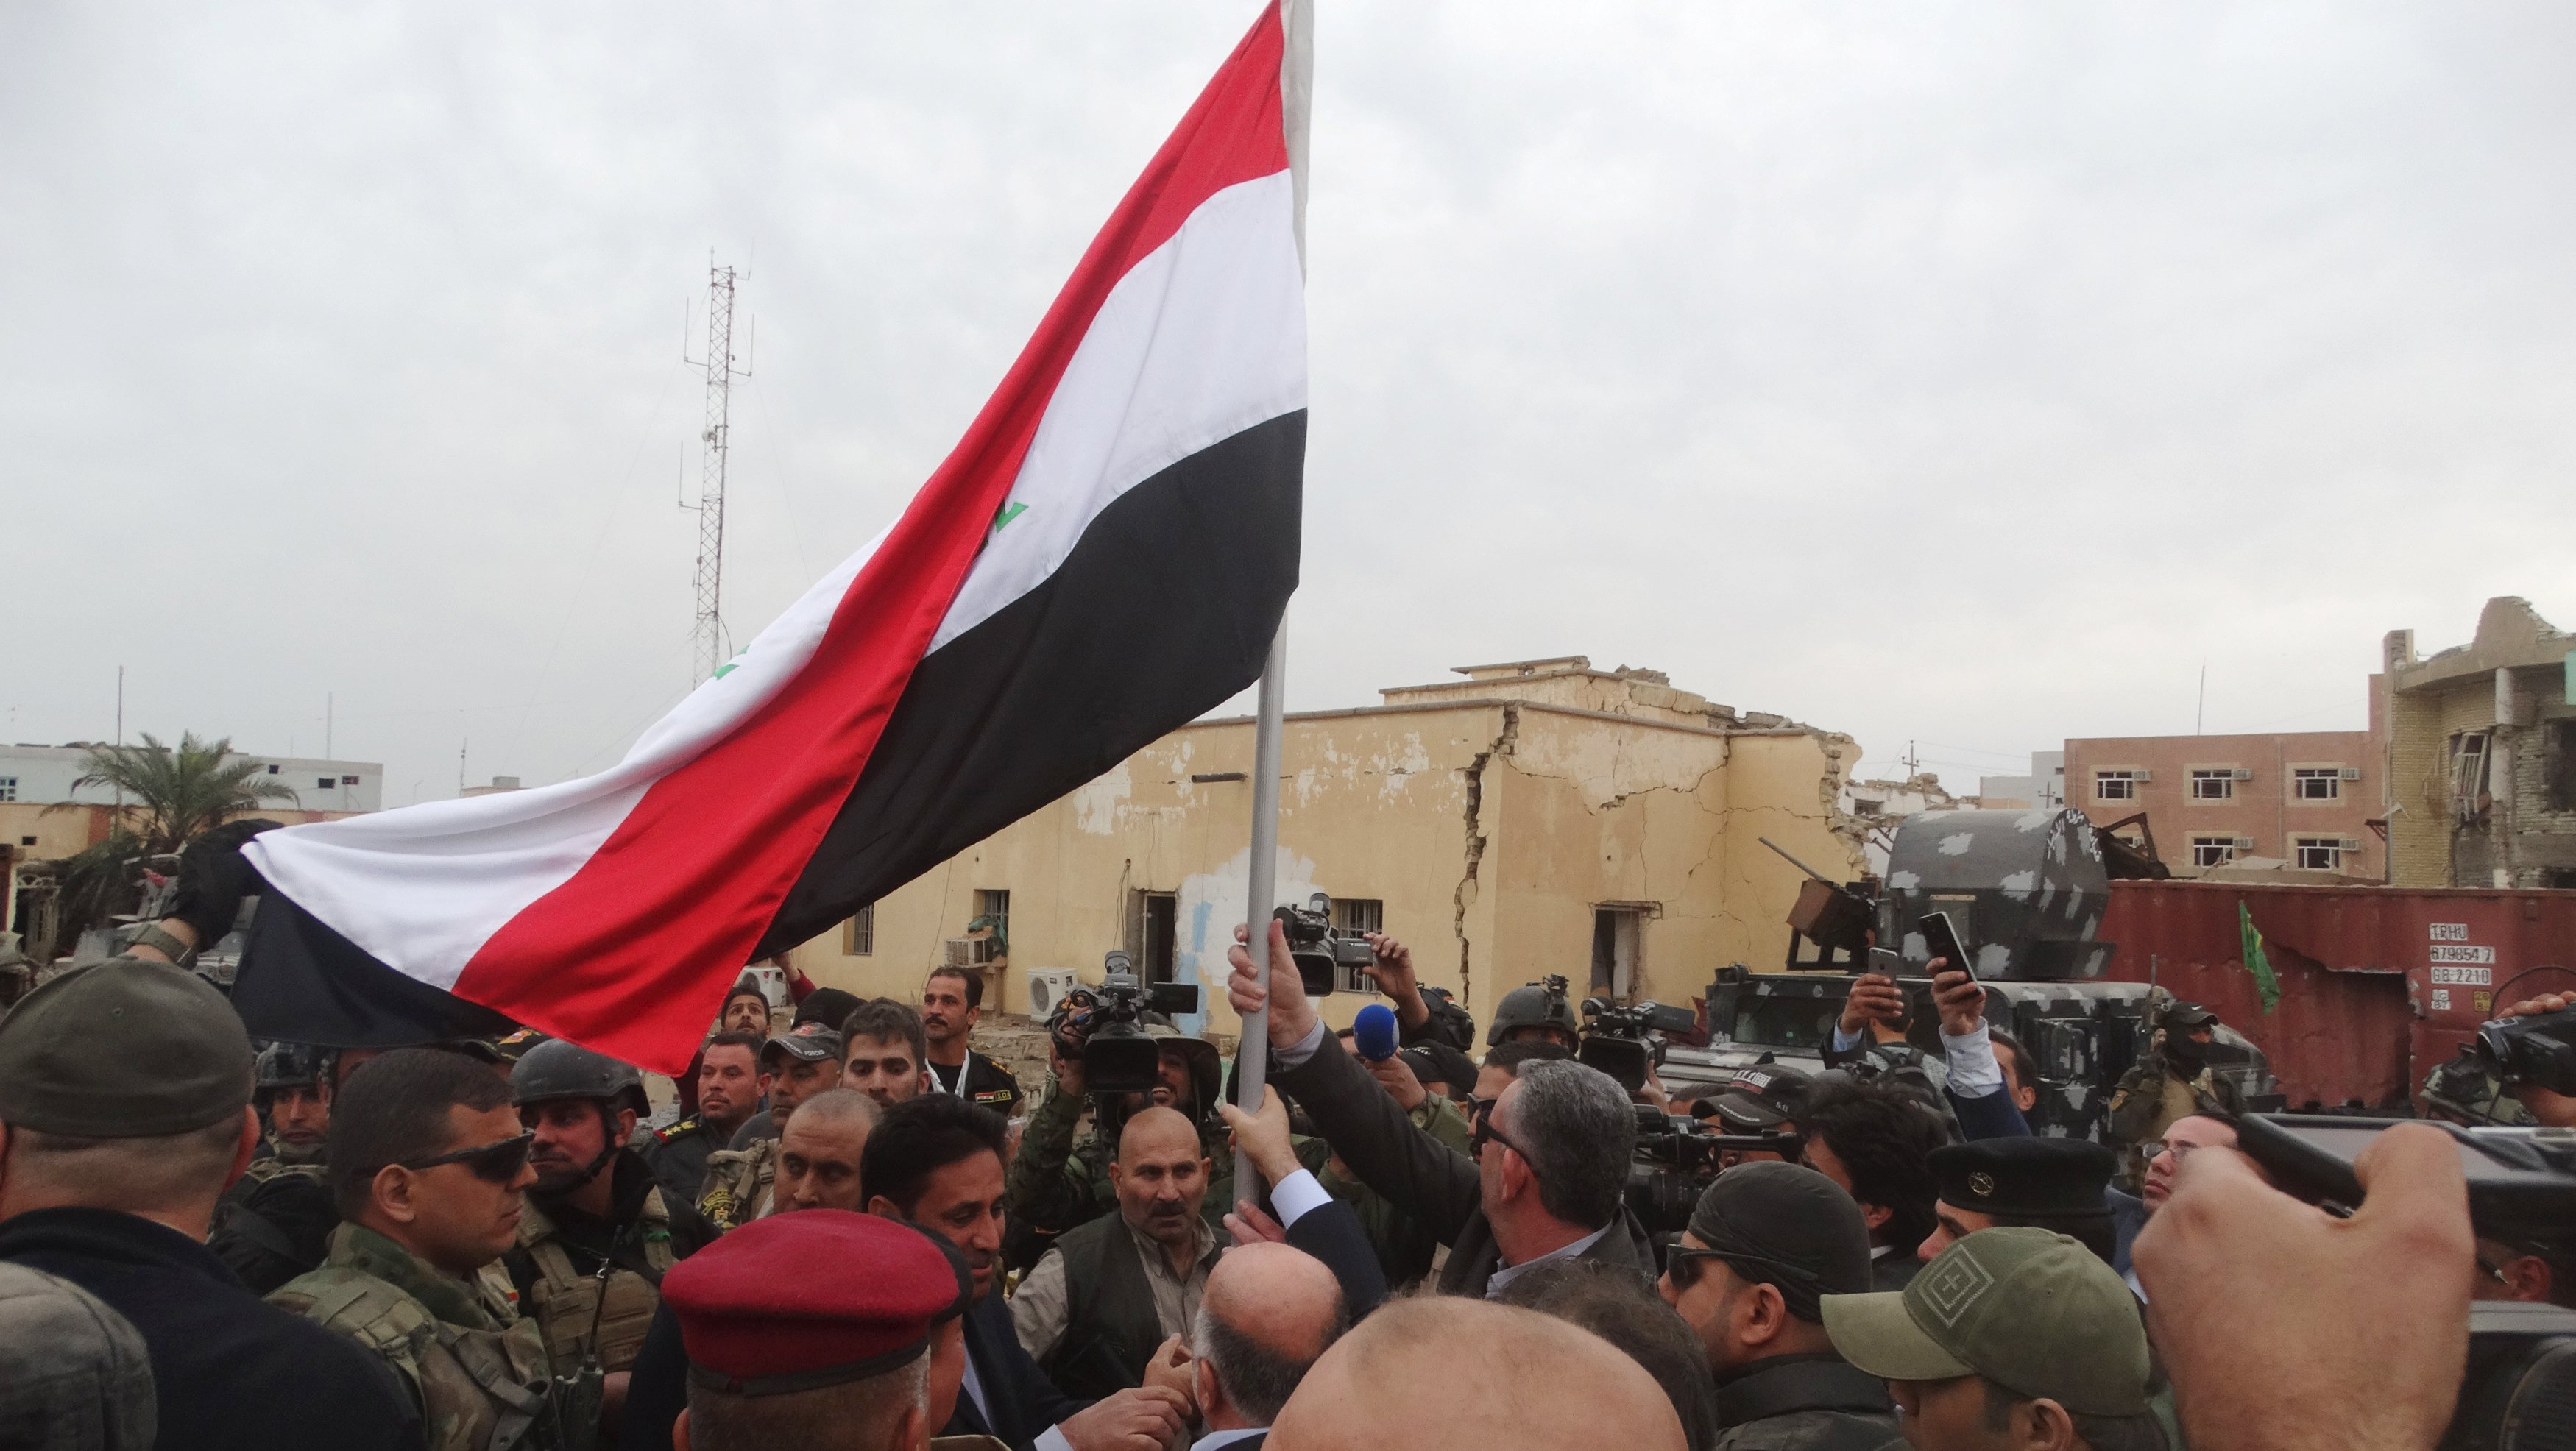 Iraqi Prime Minister Haider al-Abadi (C, back to camera) holds an Iraqi flag in the city of Ramadi, December 29, 2015. Photo: Reuters